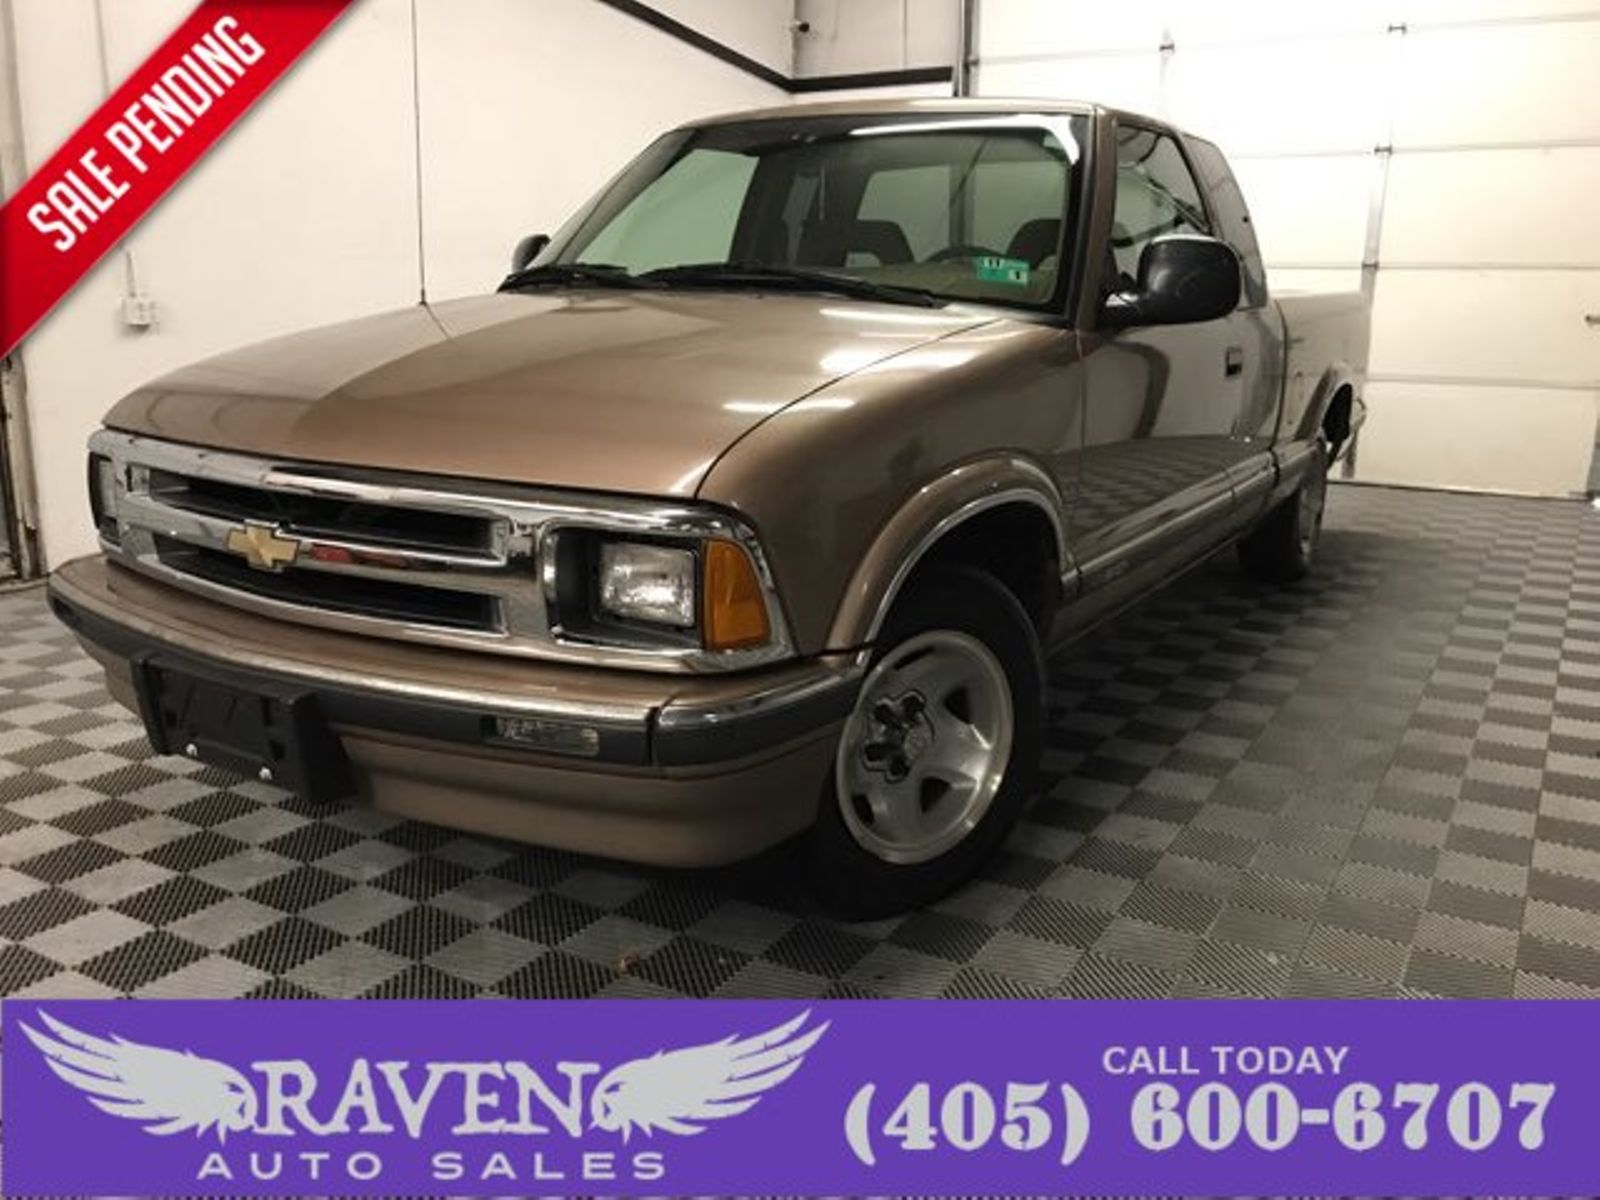 1996 Chevrolet S10 Ls V6 Pw Pl City Oklahoma Raven Auto Sales Chevy Tail Light Wiring Harness Cap In